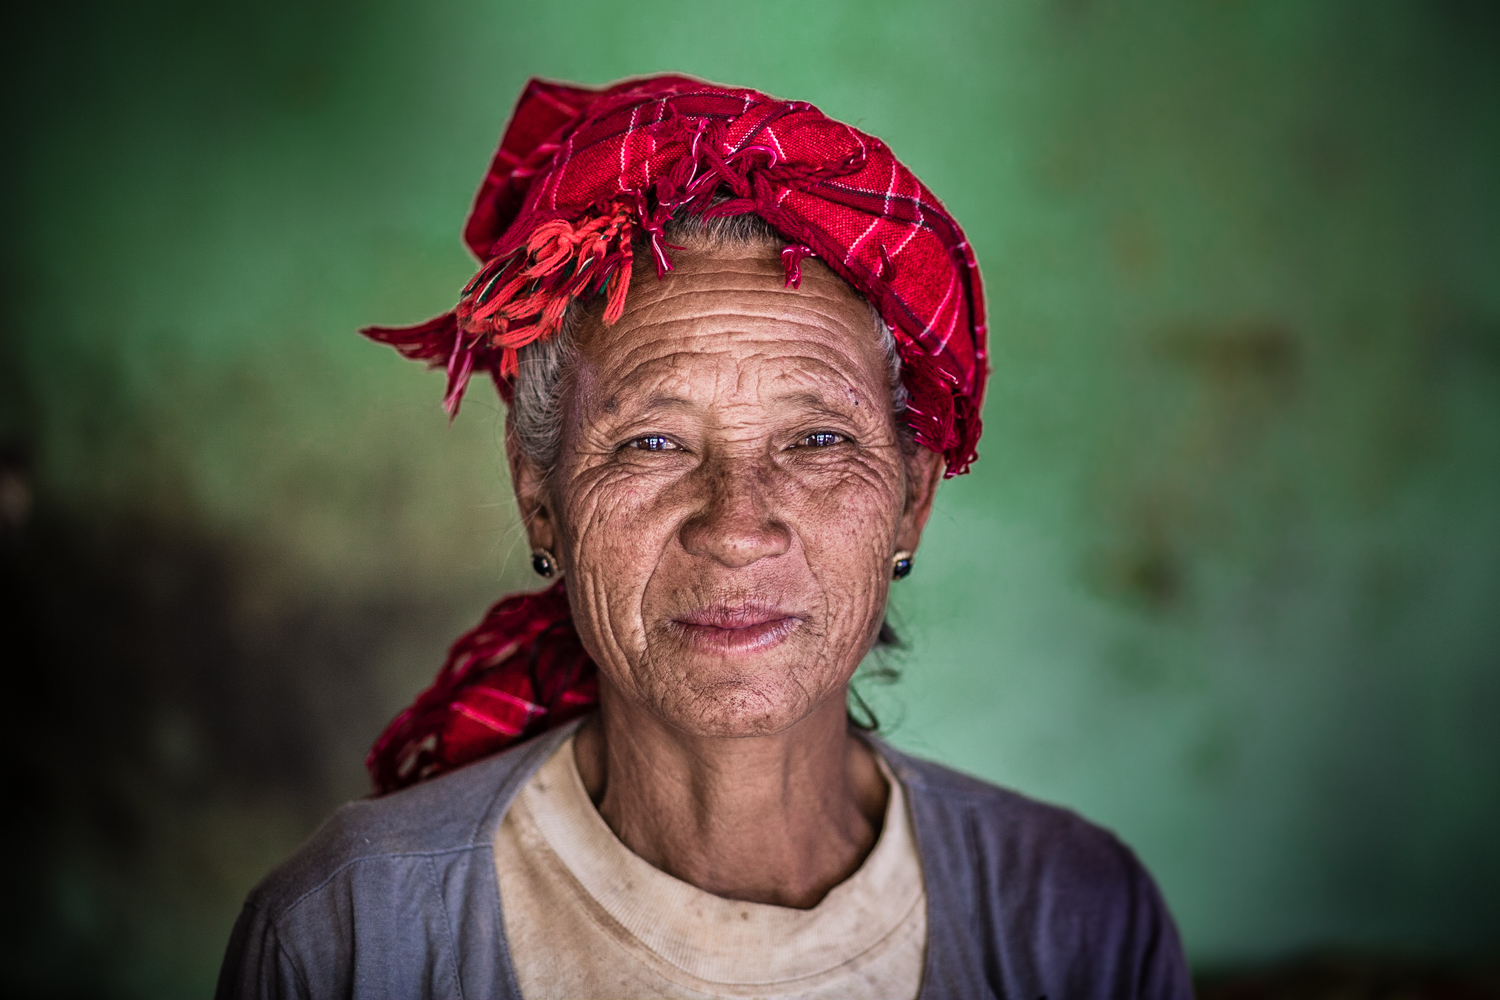 A woman wearing a traditional headscarf.